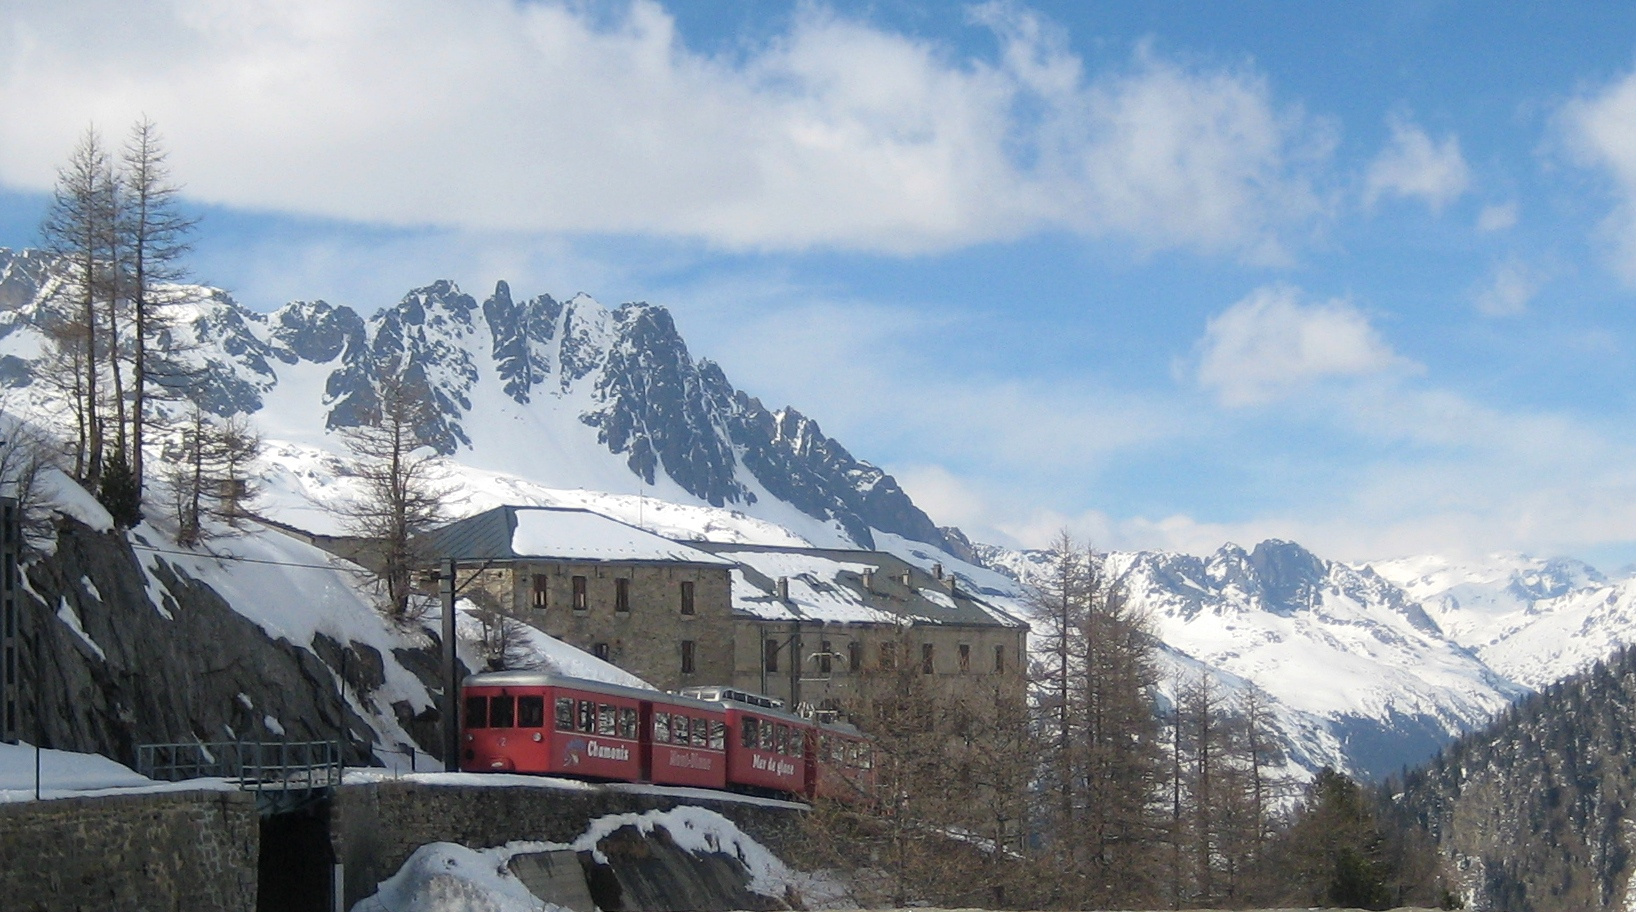 Hotel Montenvers File Train Hotel Montenvers Jpg Wikimedia Commons